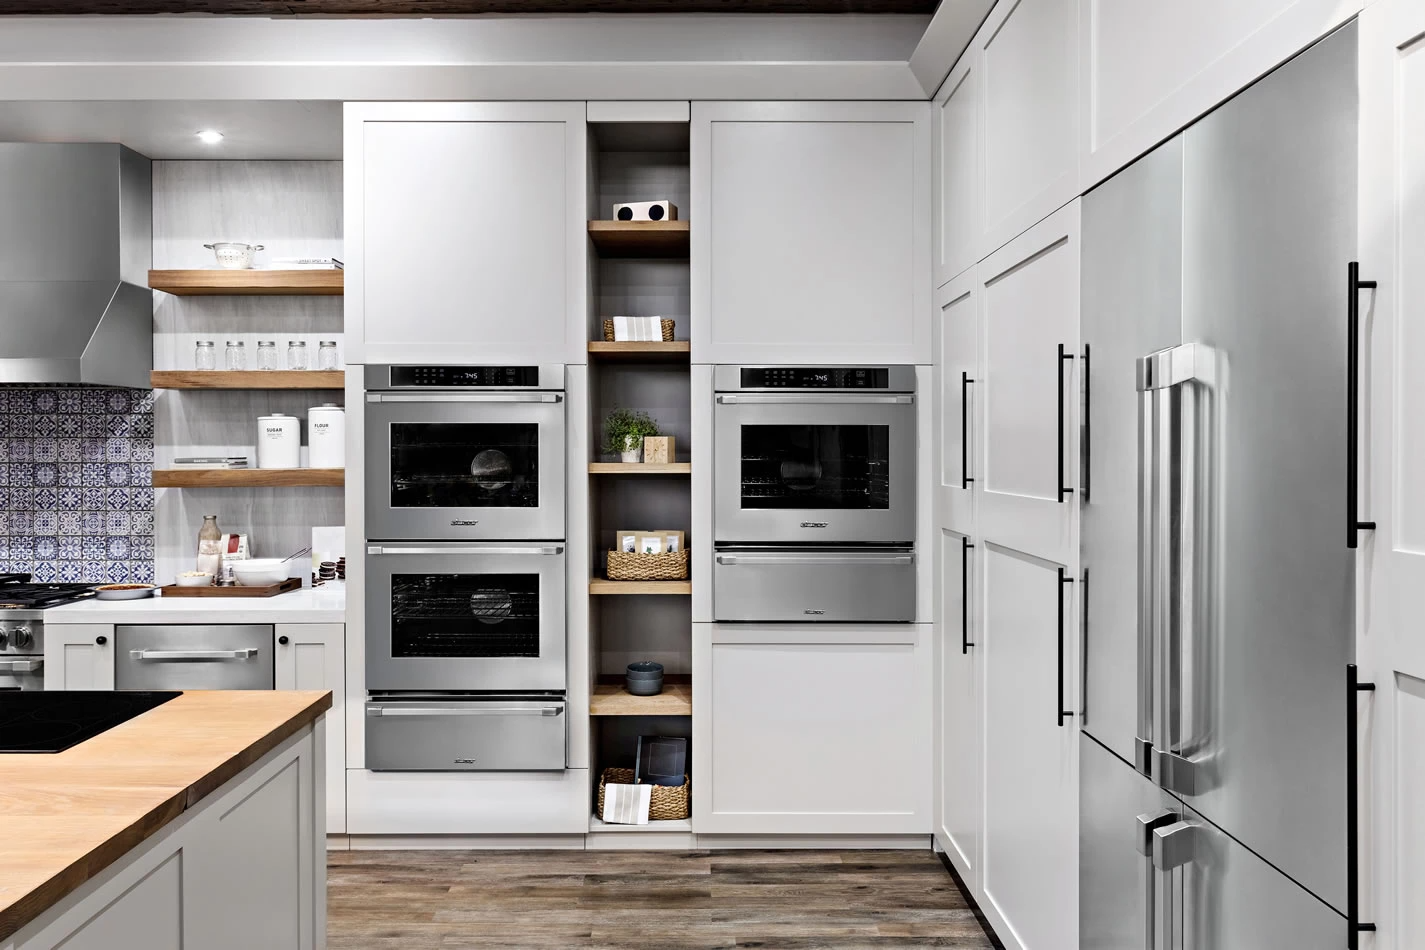 Dacor - 4 Piece Package Promo - Get a Dacor Kitchen starting at $7999*